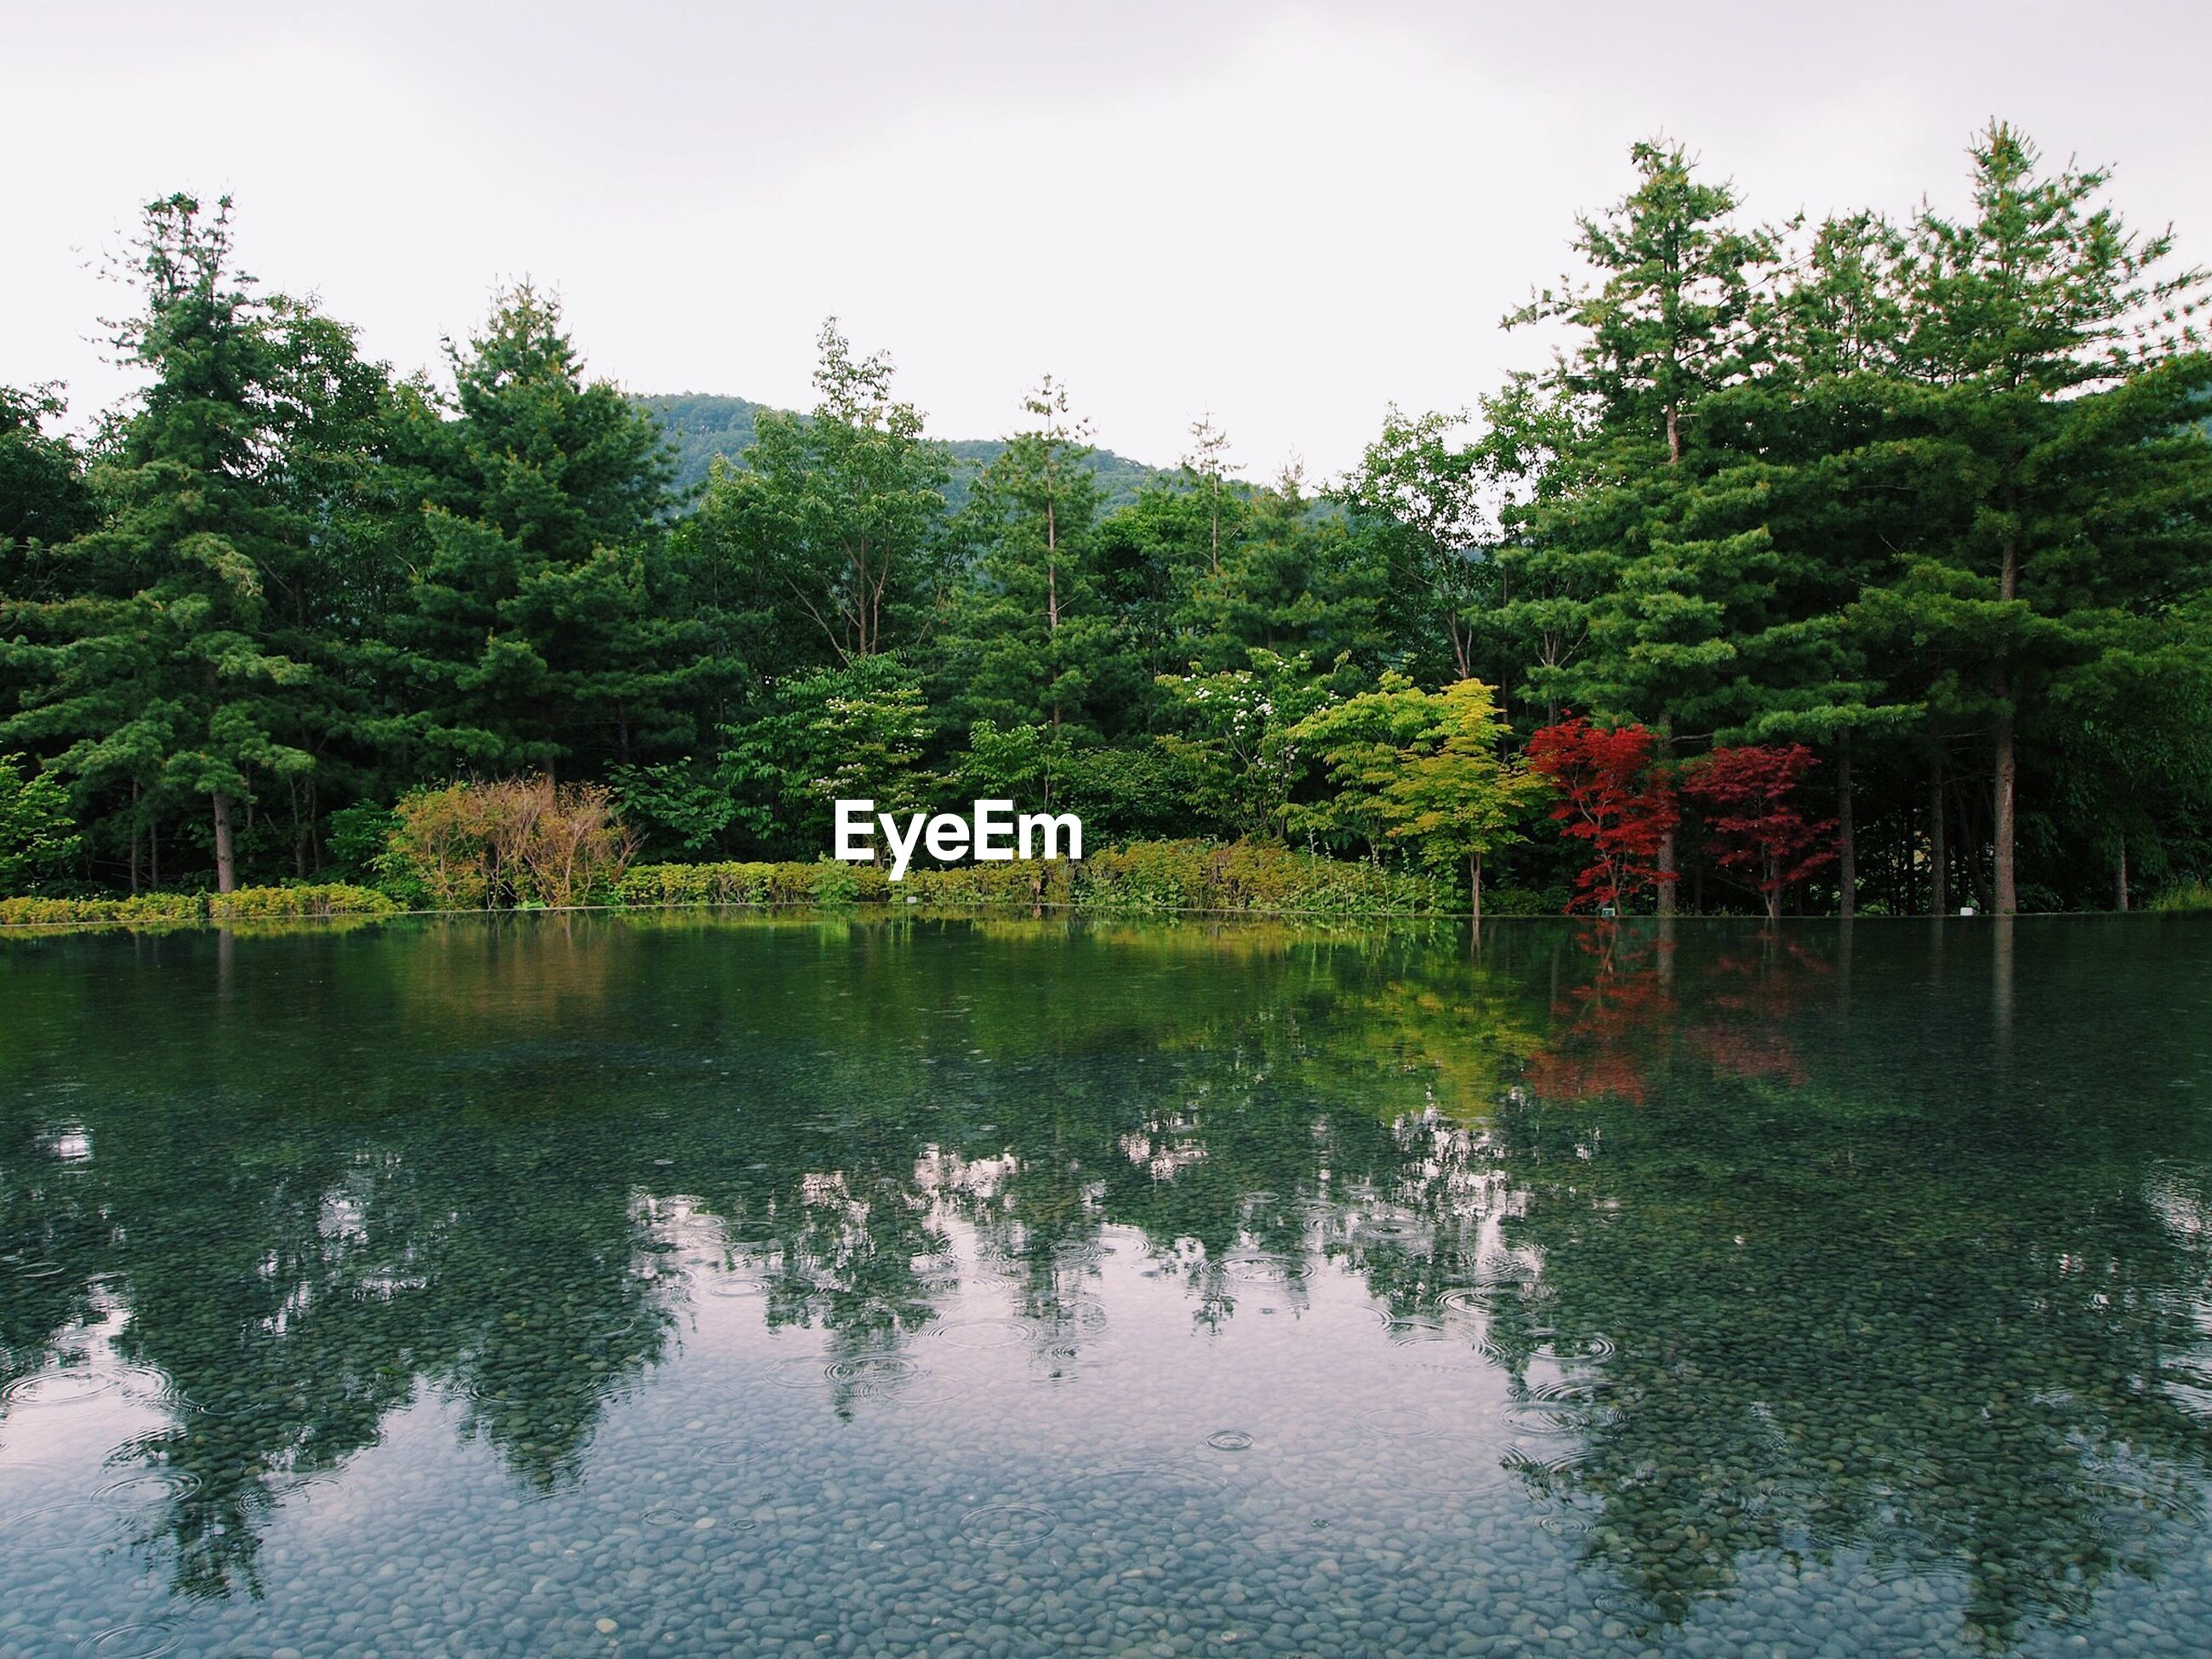 Scenic view of calm lake and trees against clear sky